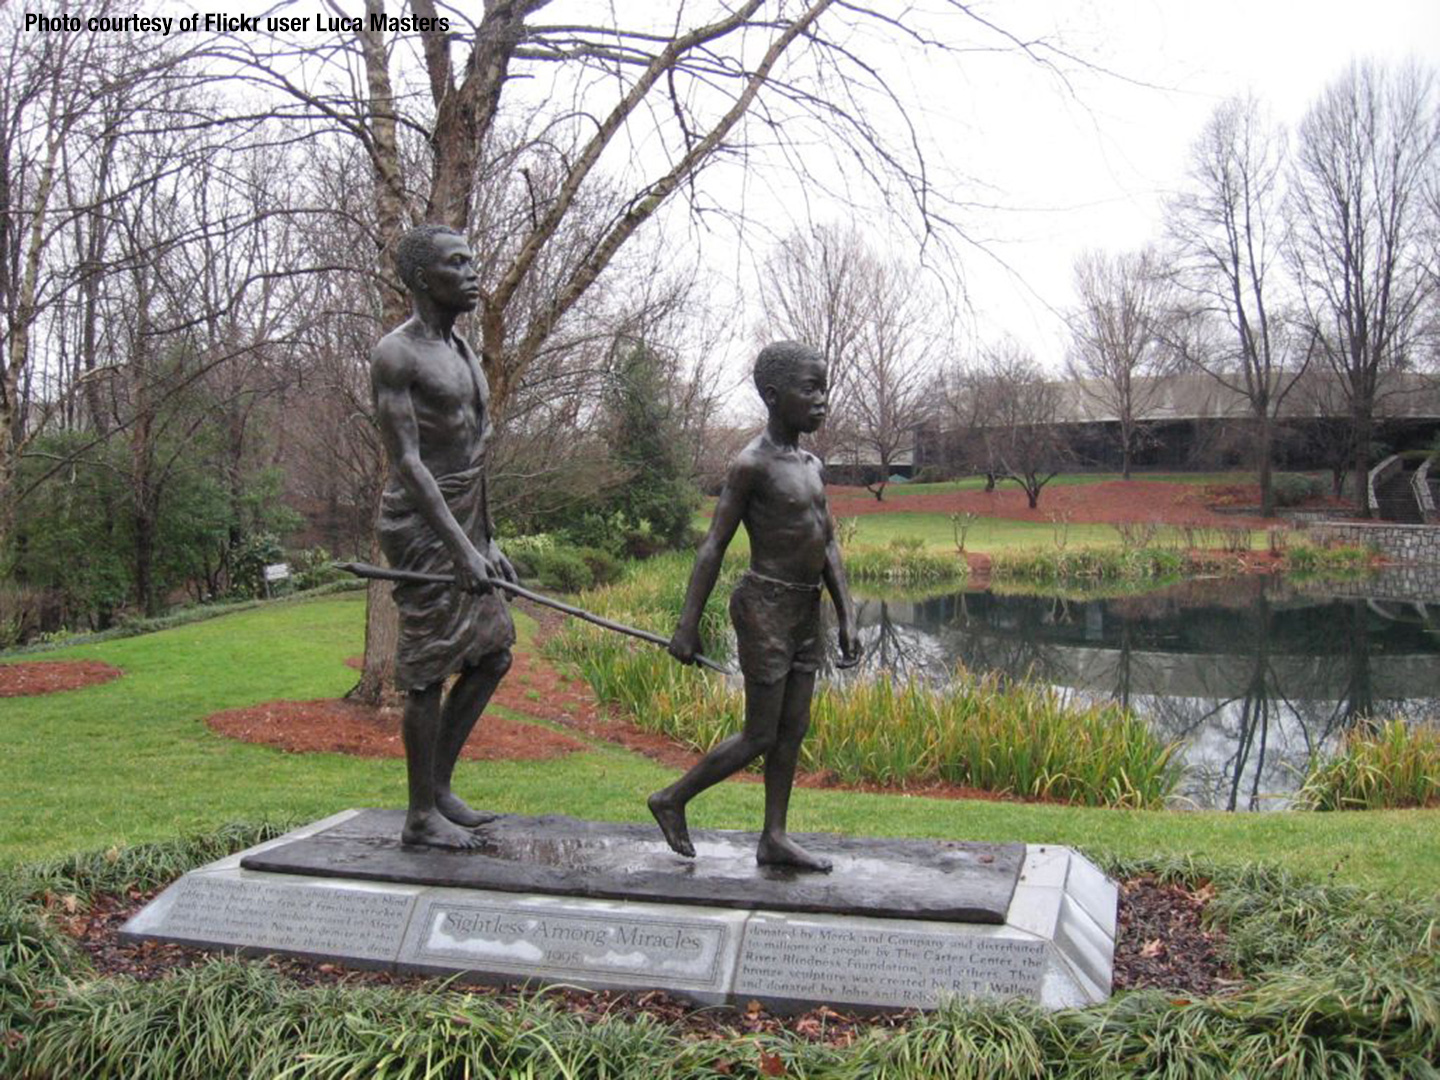 Statue of an African boy leading a blind man with a stick (courtesy of Flickr user Luca Masters)